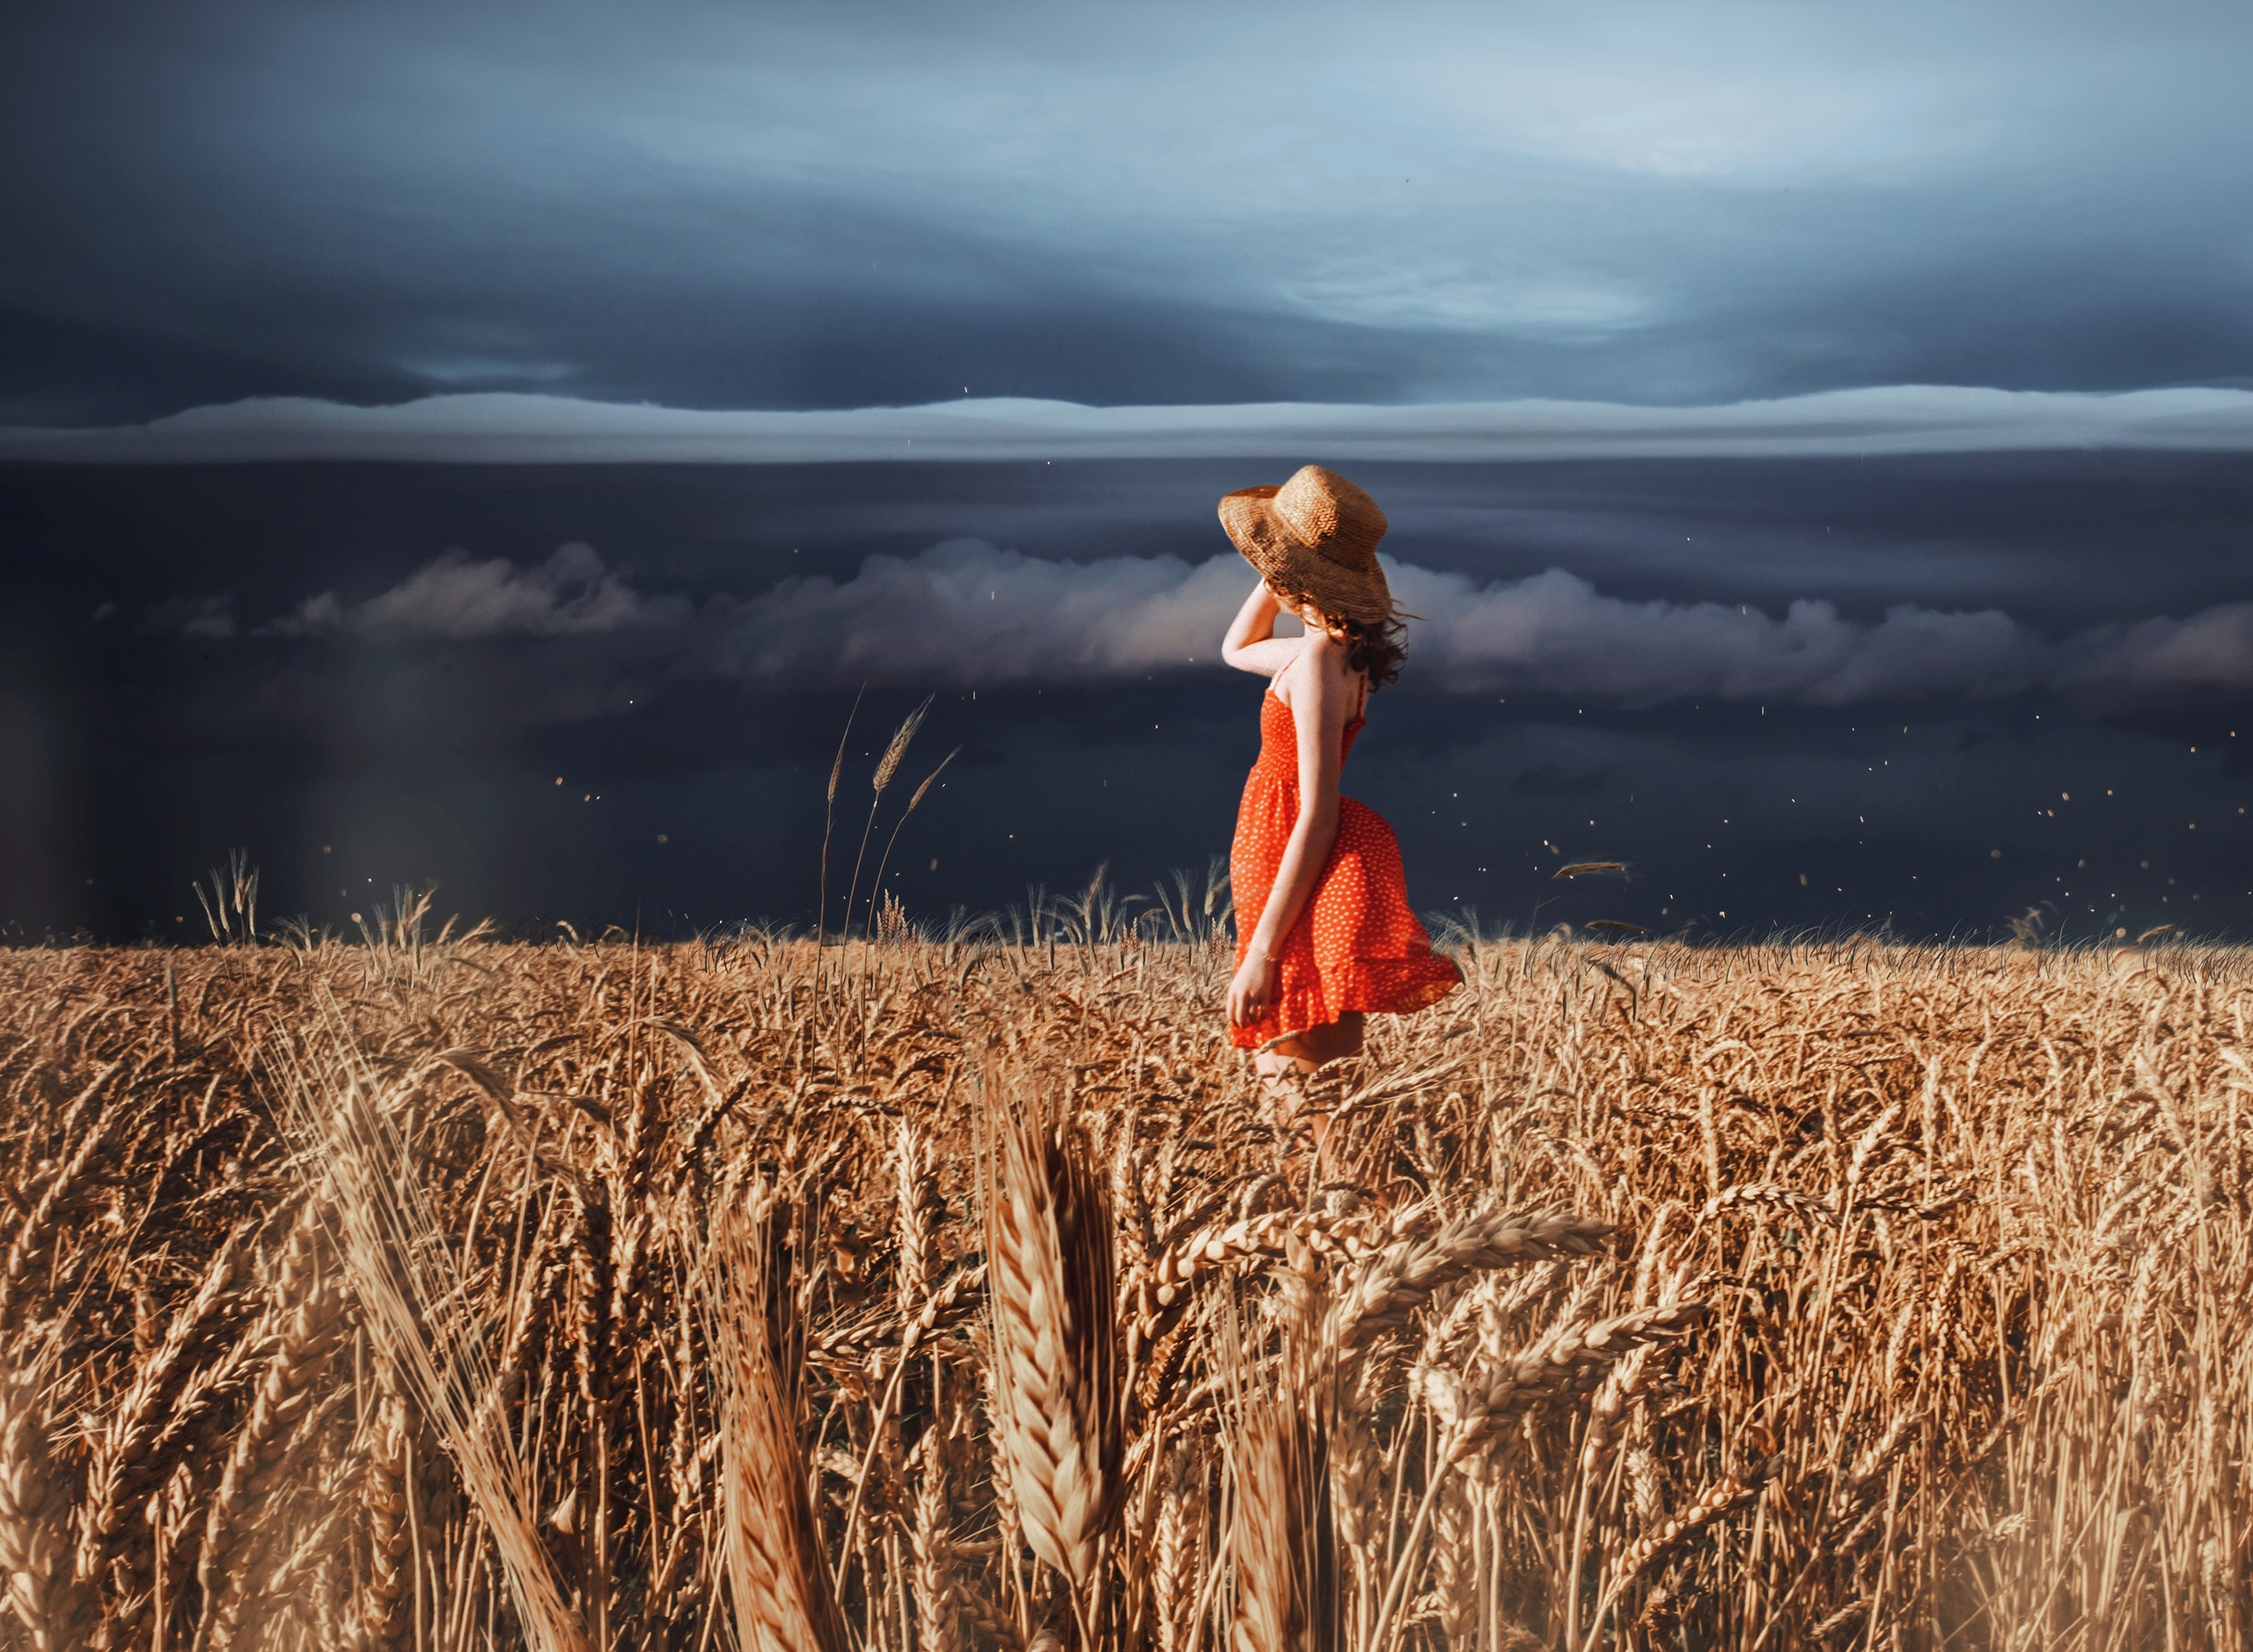 Cloud Field Girl Hat Mood Red Dress Summer Wheat Woman 2560x1877